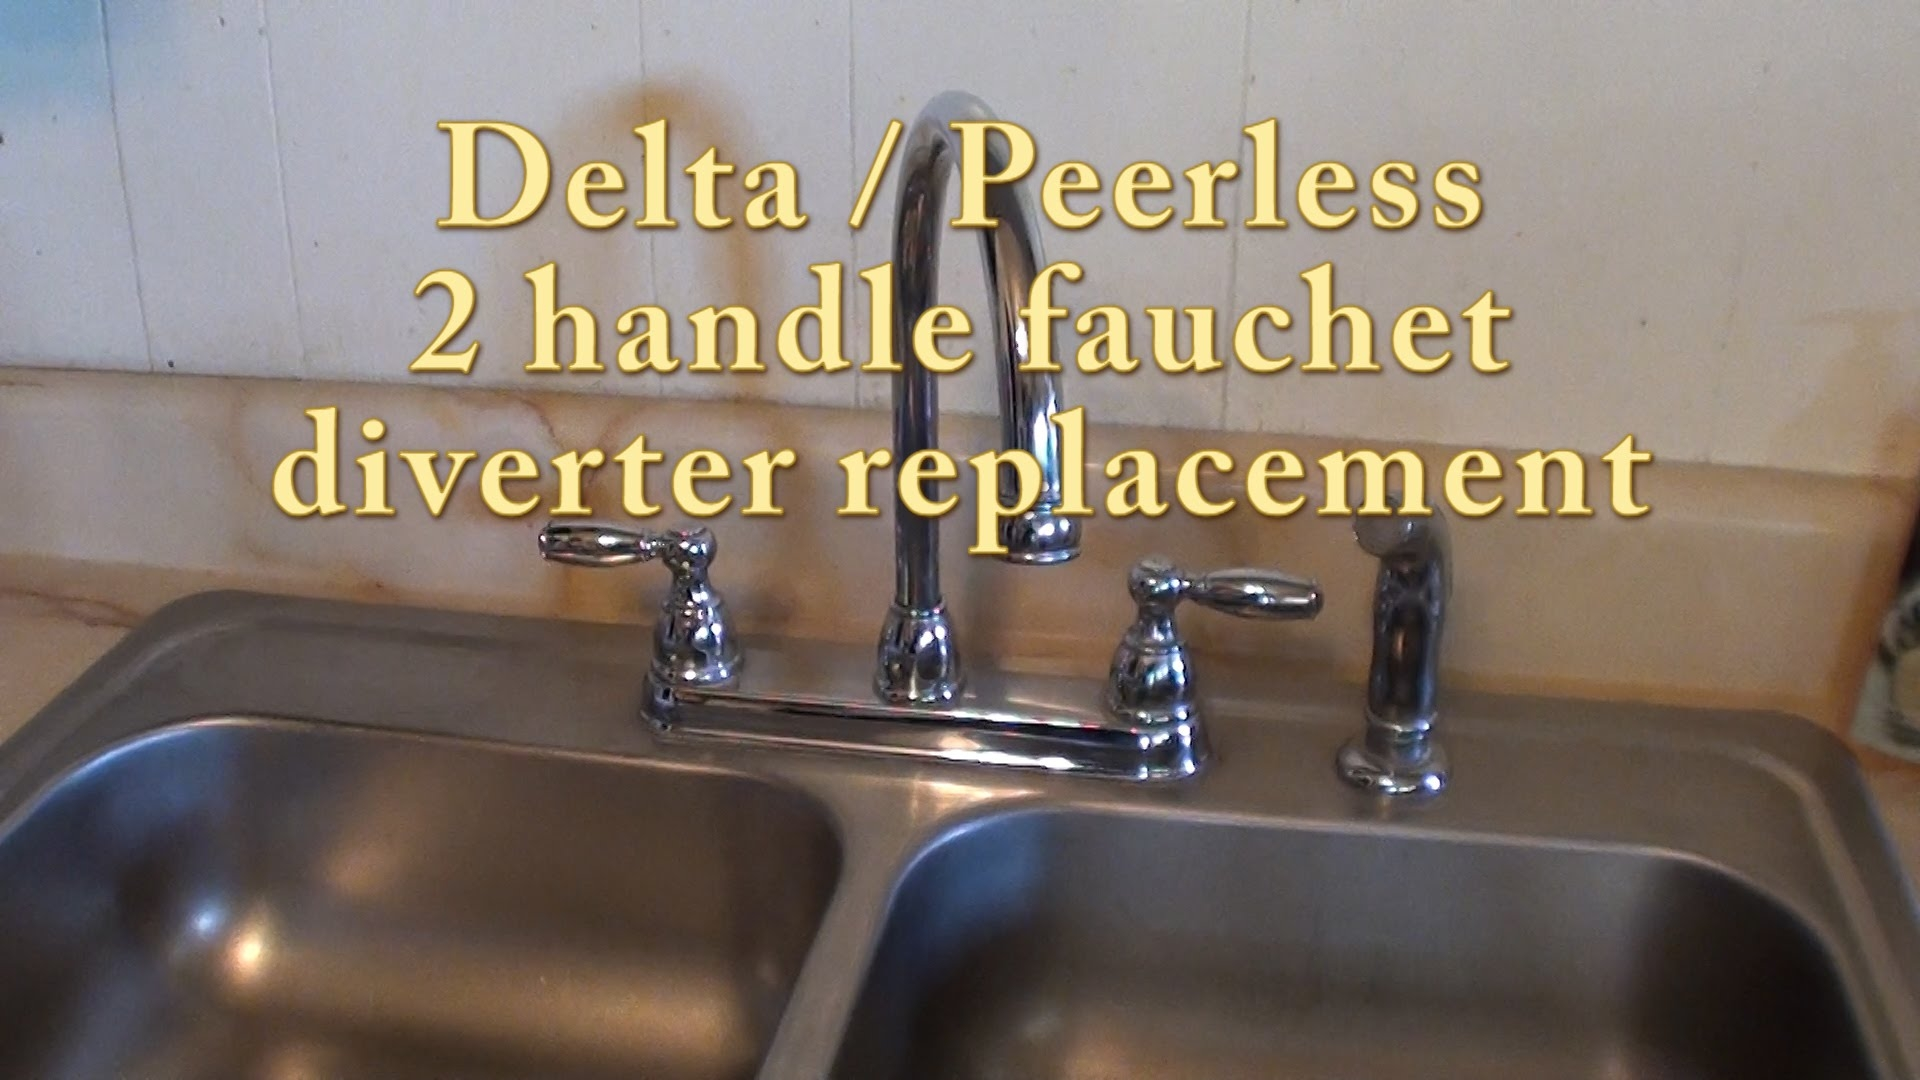 delta peerless 2 handle faucet diverter replacement rp41702 throughout sizing 1920 x 1080